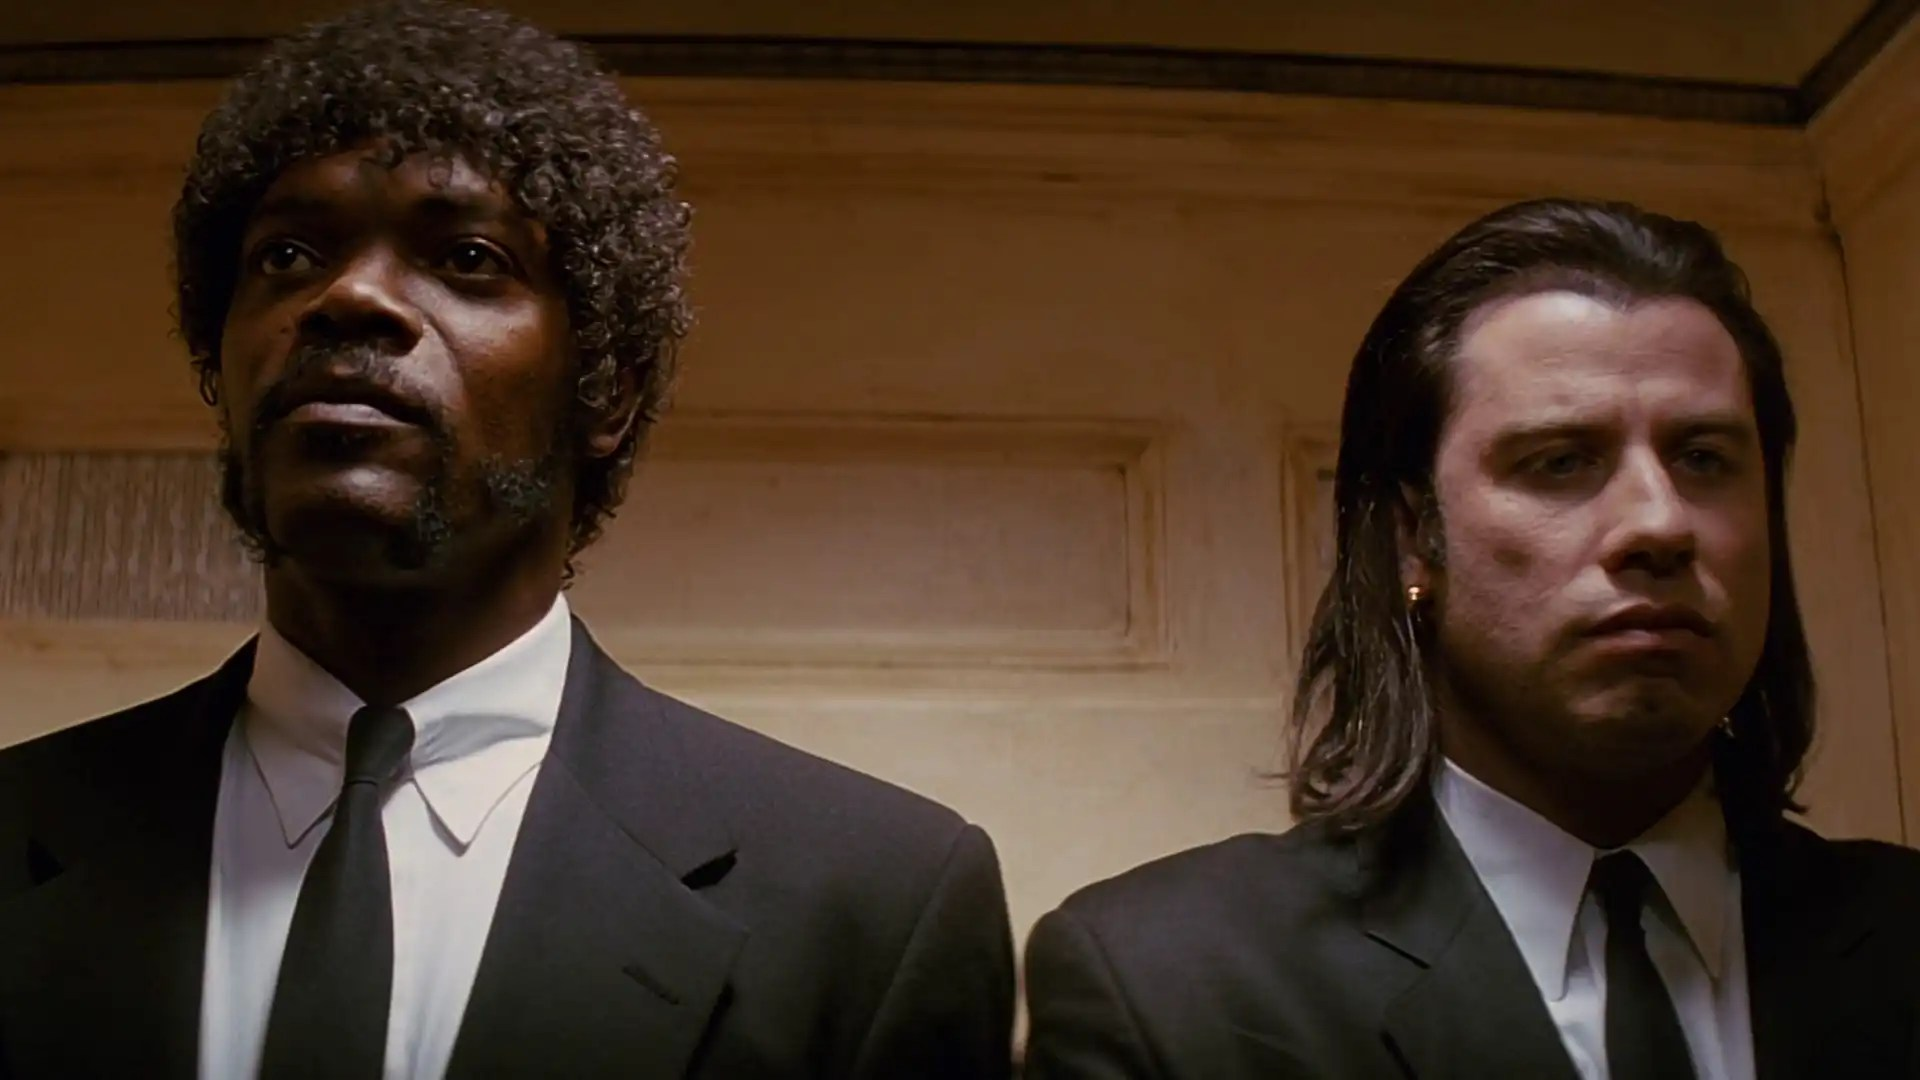 You are currently viewing Grandes Diálogos: Pulp Fiction